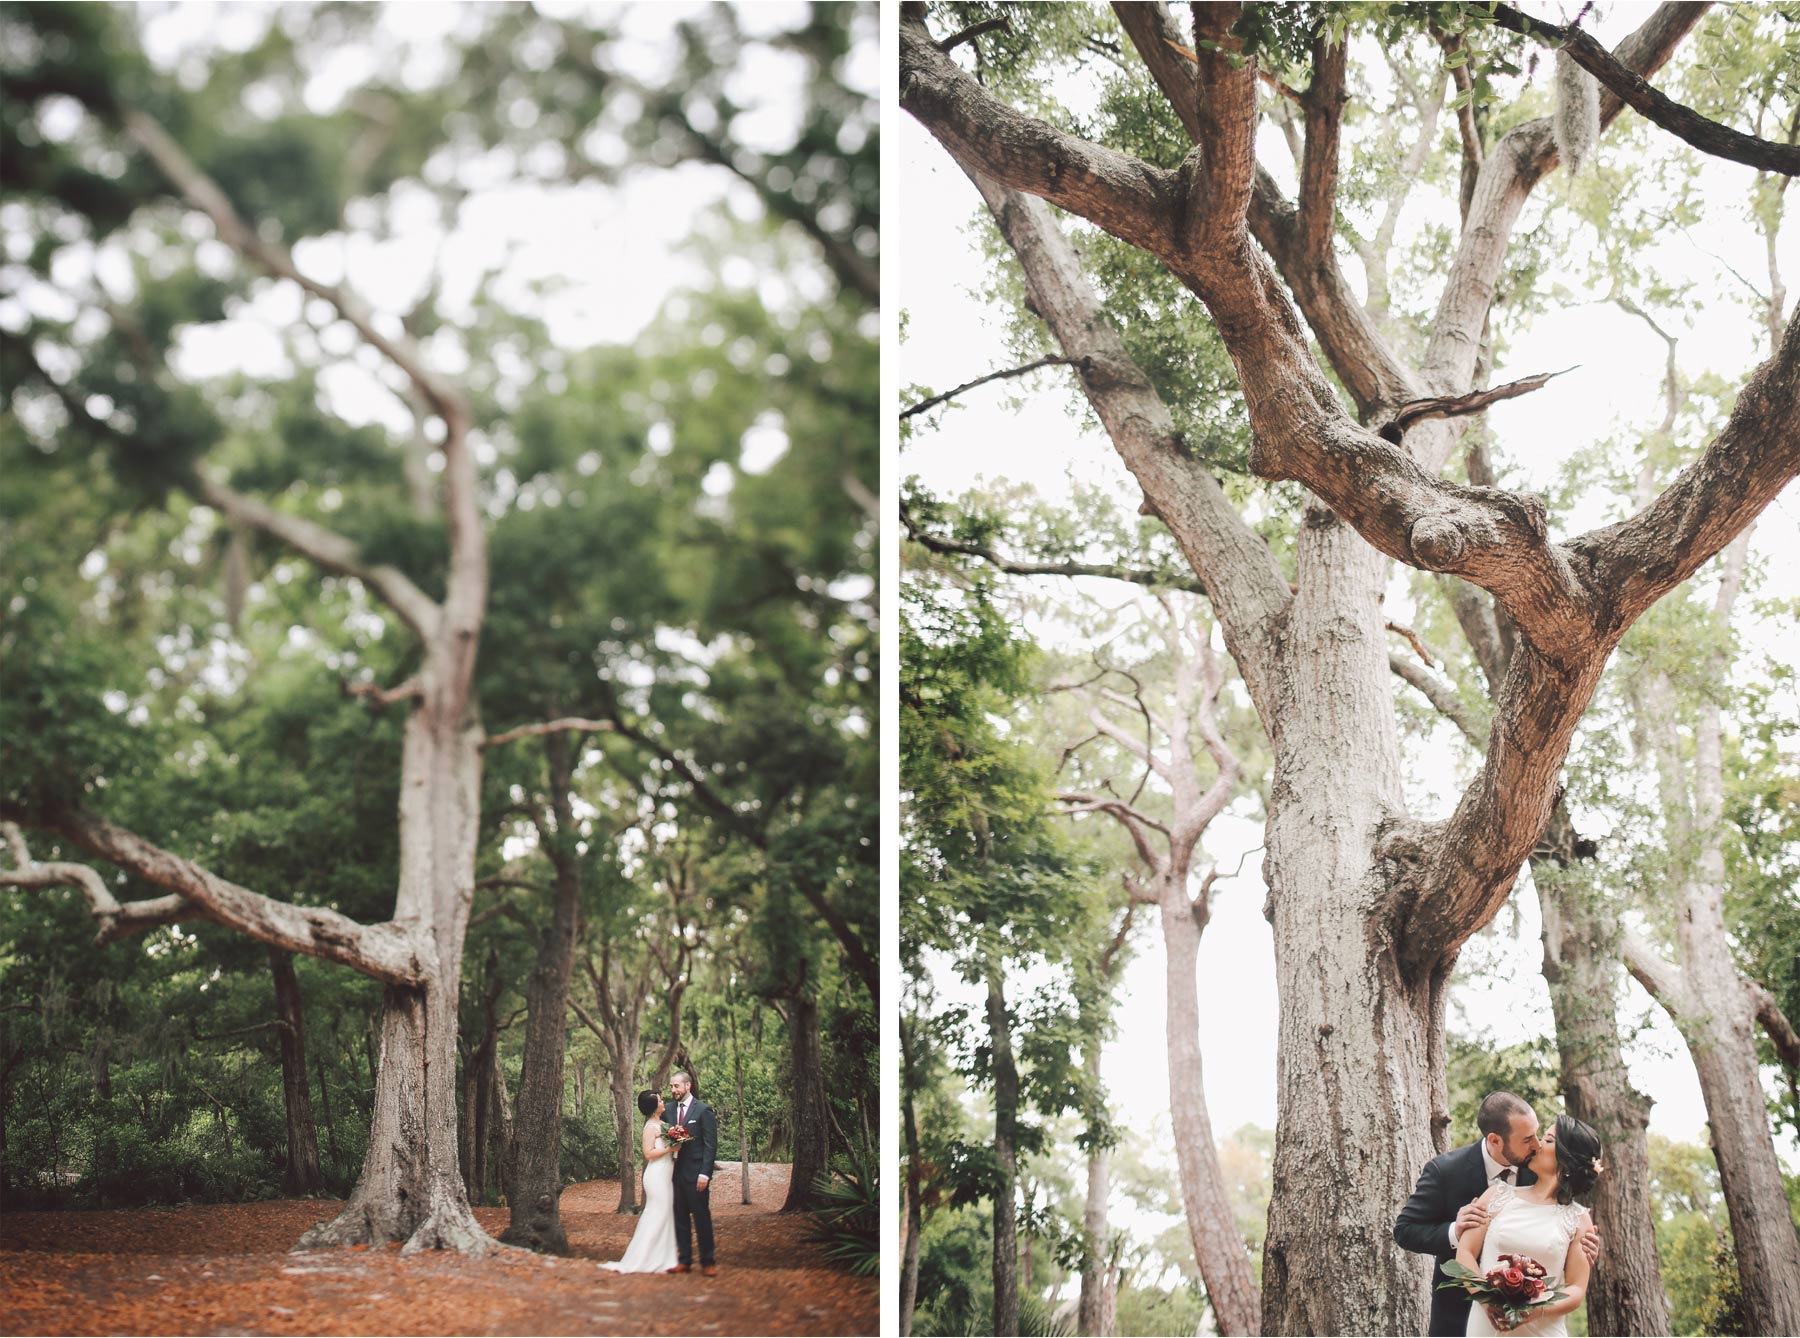 11-South-Carolina-Wedding-by-Vick-Photography-Hilton-Head-Island-Omni-Oceanfront-Hotel-Destination-Trees-Moss-Tropical-Felyn-and-Will.jpg